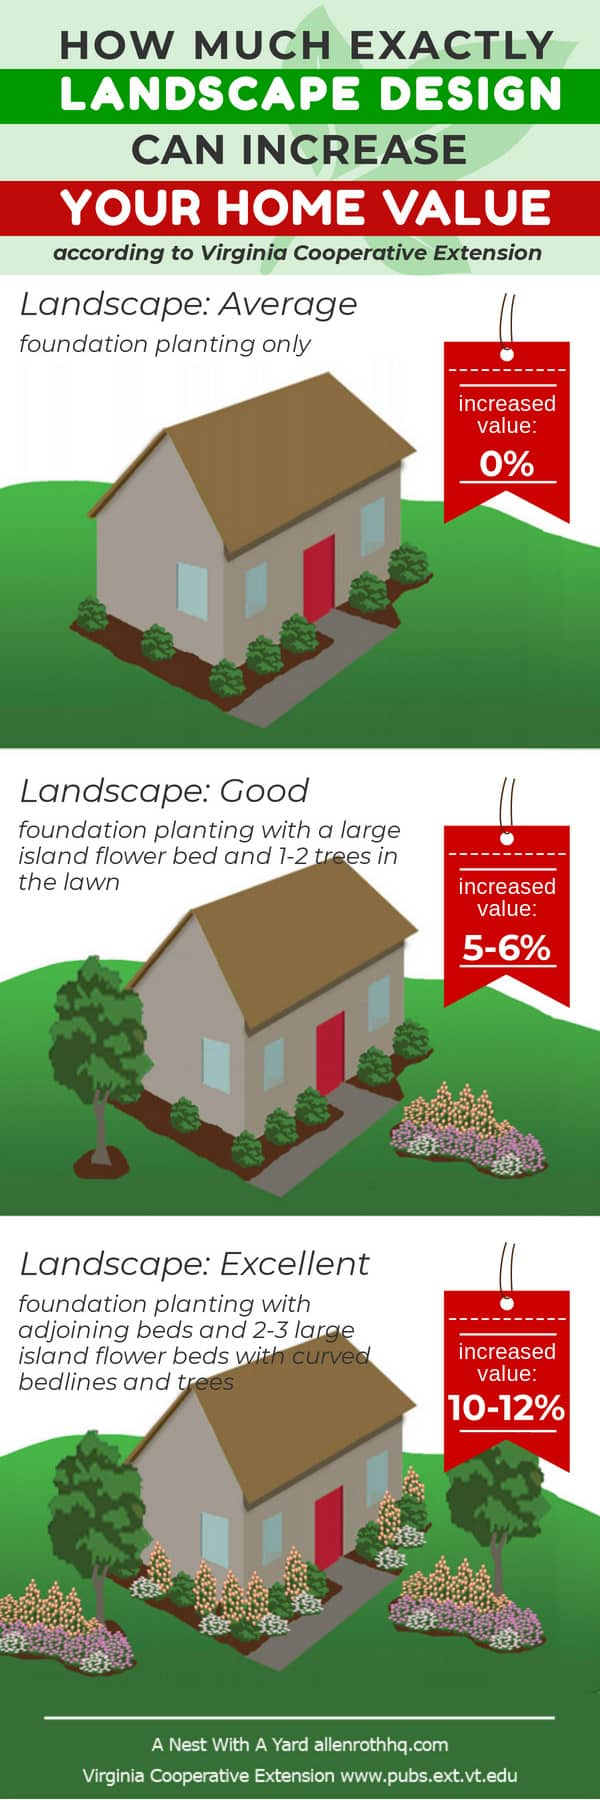 How Much Does House Landscaping Increase Home Value 15 Tips To Boost Your Landscaping Roi A Nest With A Yard